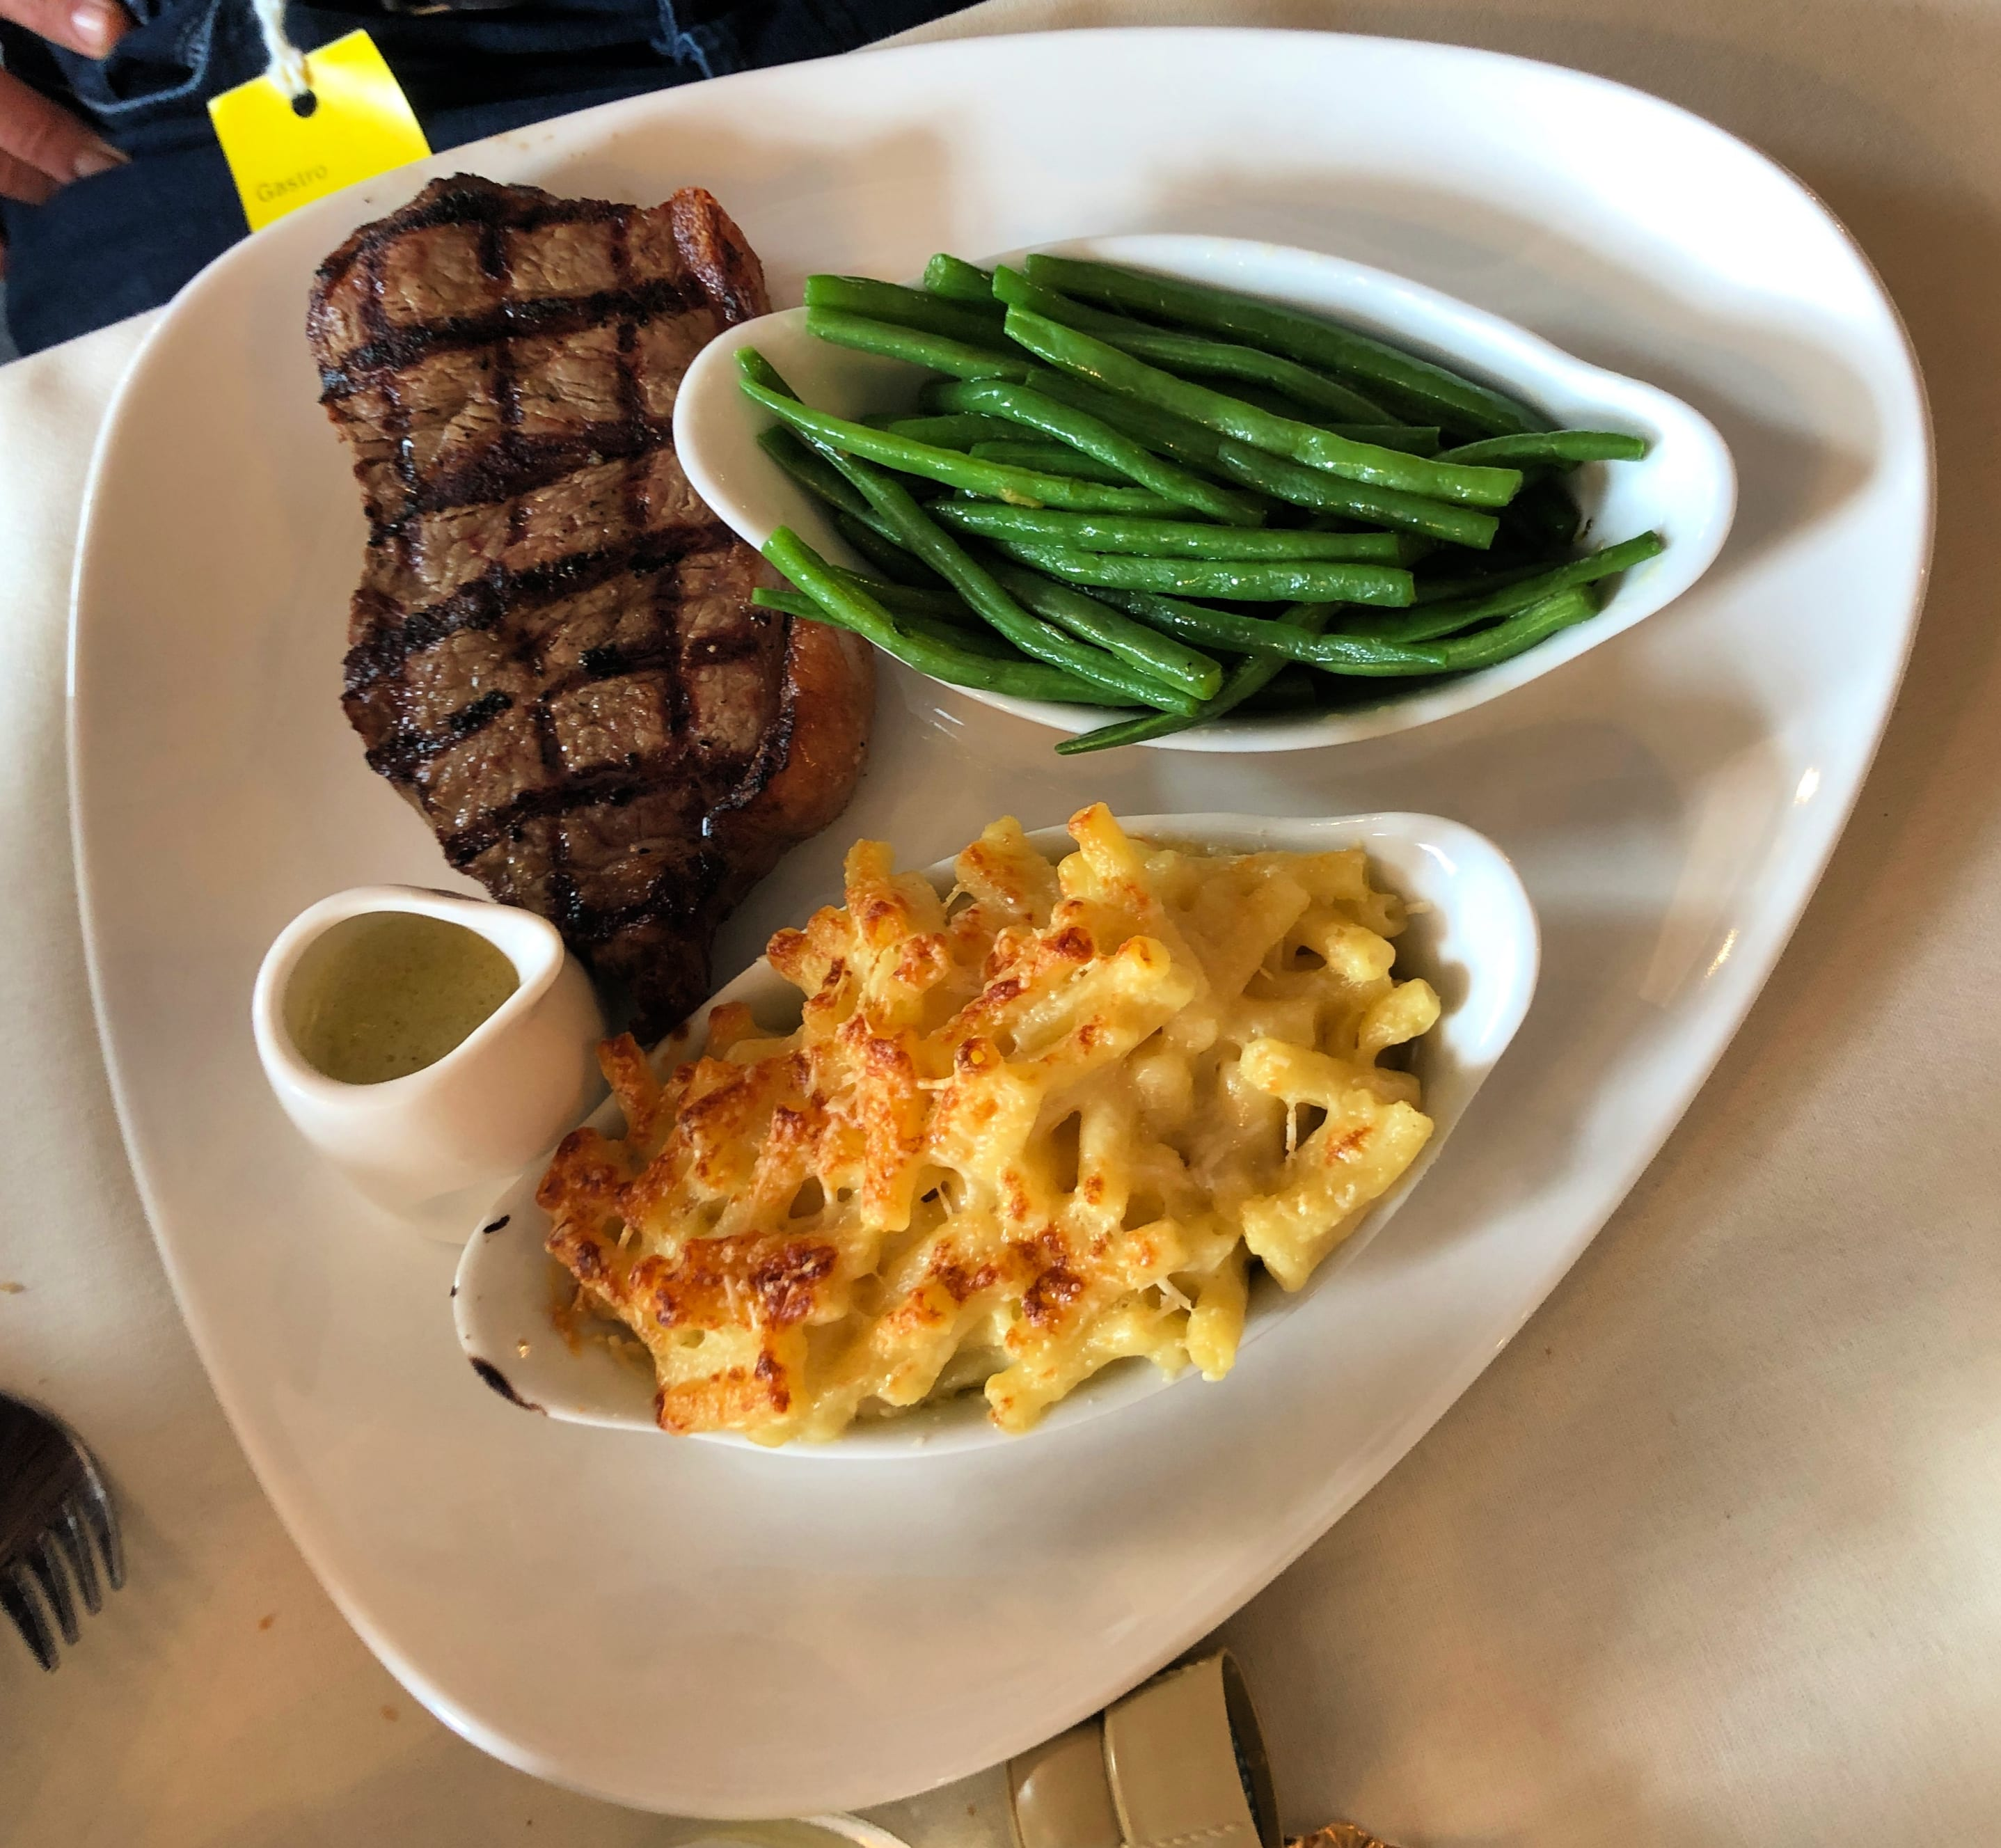 Steak and macaroni cheese with beans